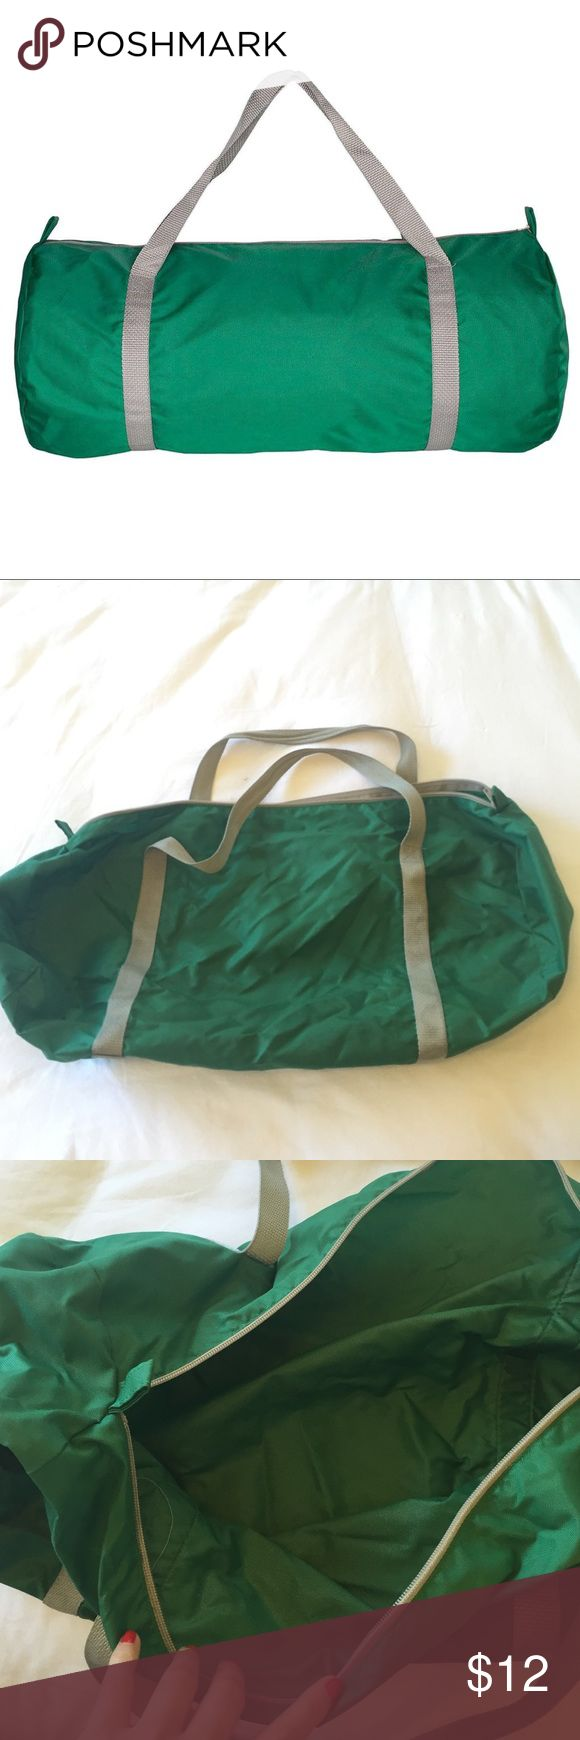 American Apparel Nylon Pack Cloth Gym Bag Used but in great condition. Regular wear and tear. American Apparel Bags Travel Bags